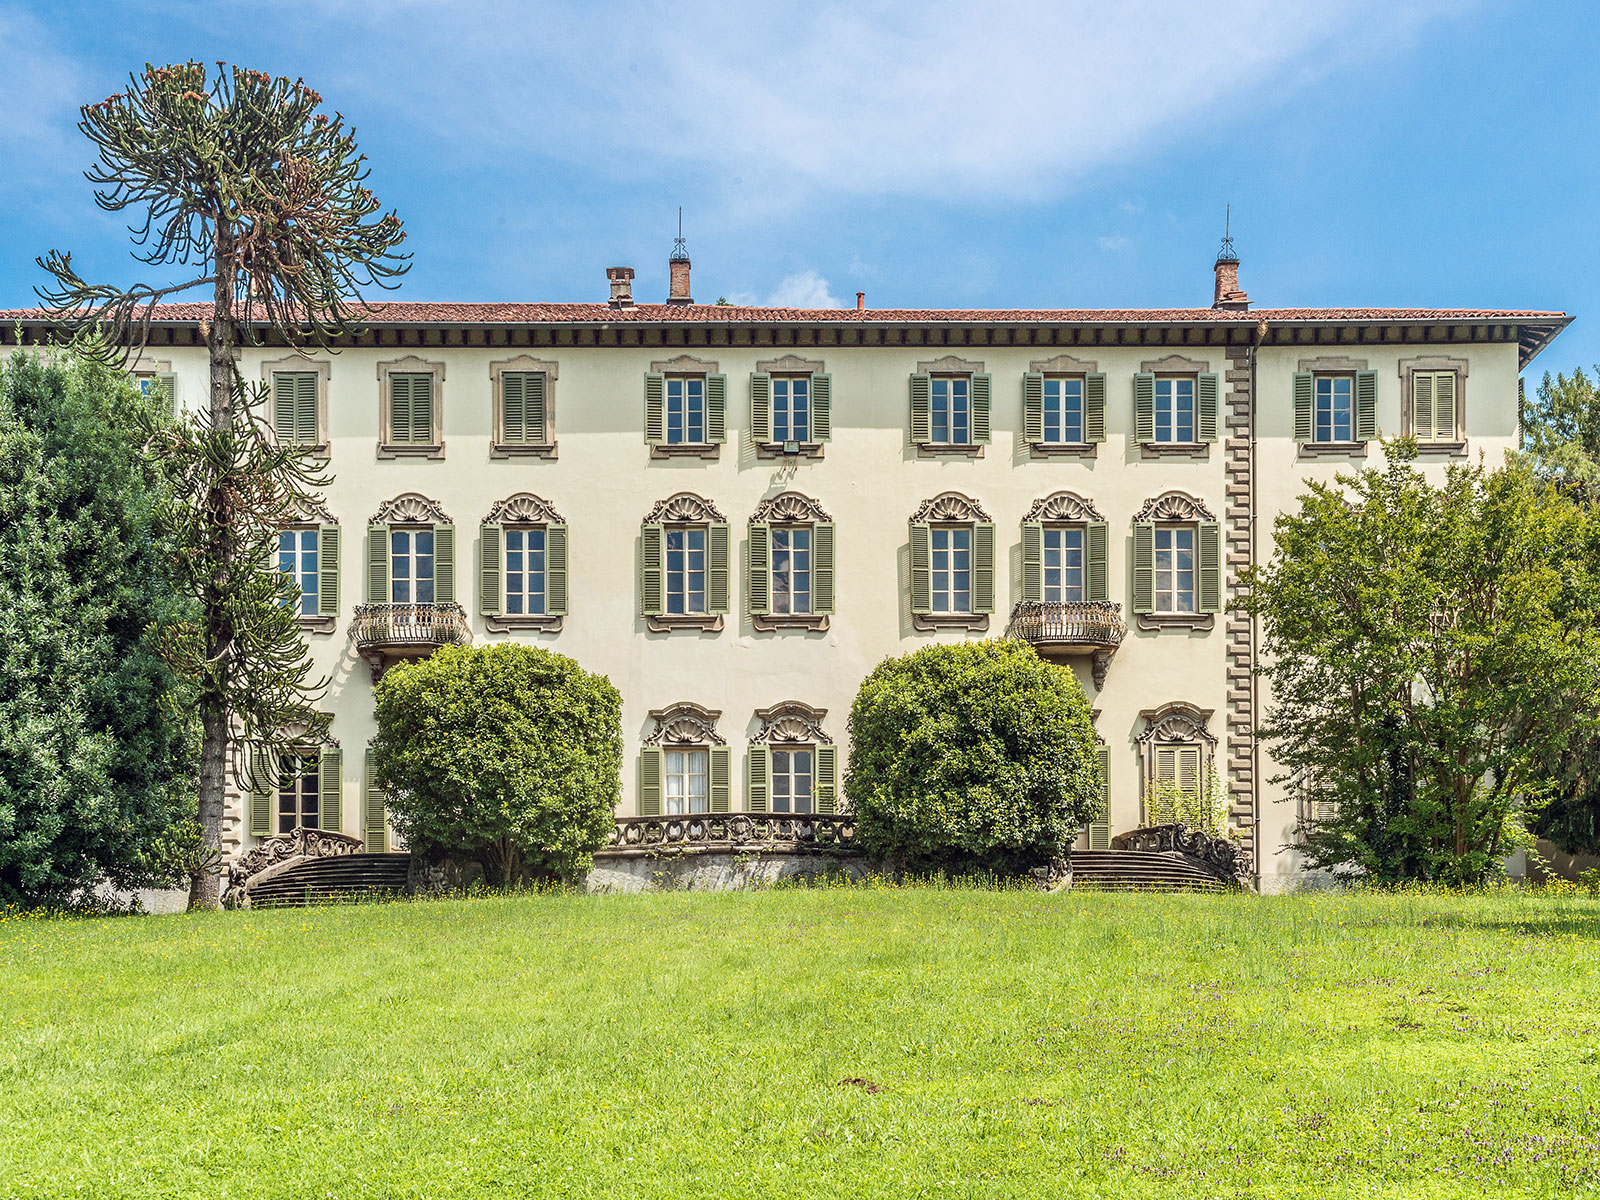 Single Family Home for Sale at Aristocratic villa with timeless allure Carate Brianza Carate Brianza, Monza Brianza 20841 Italy